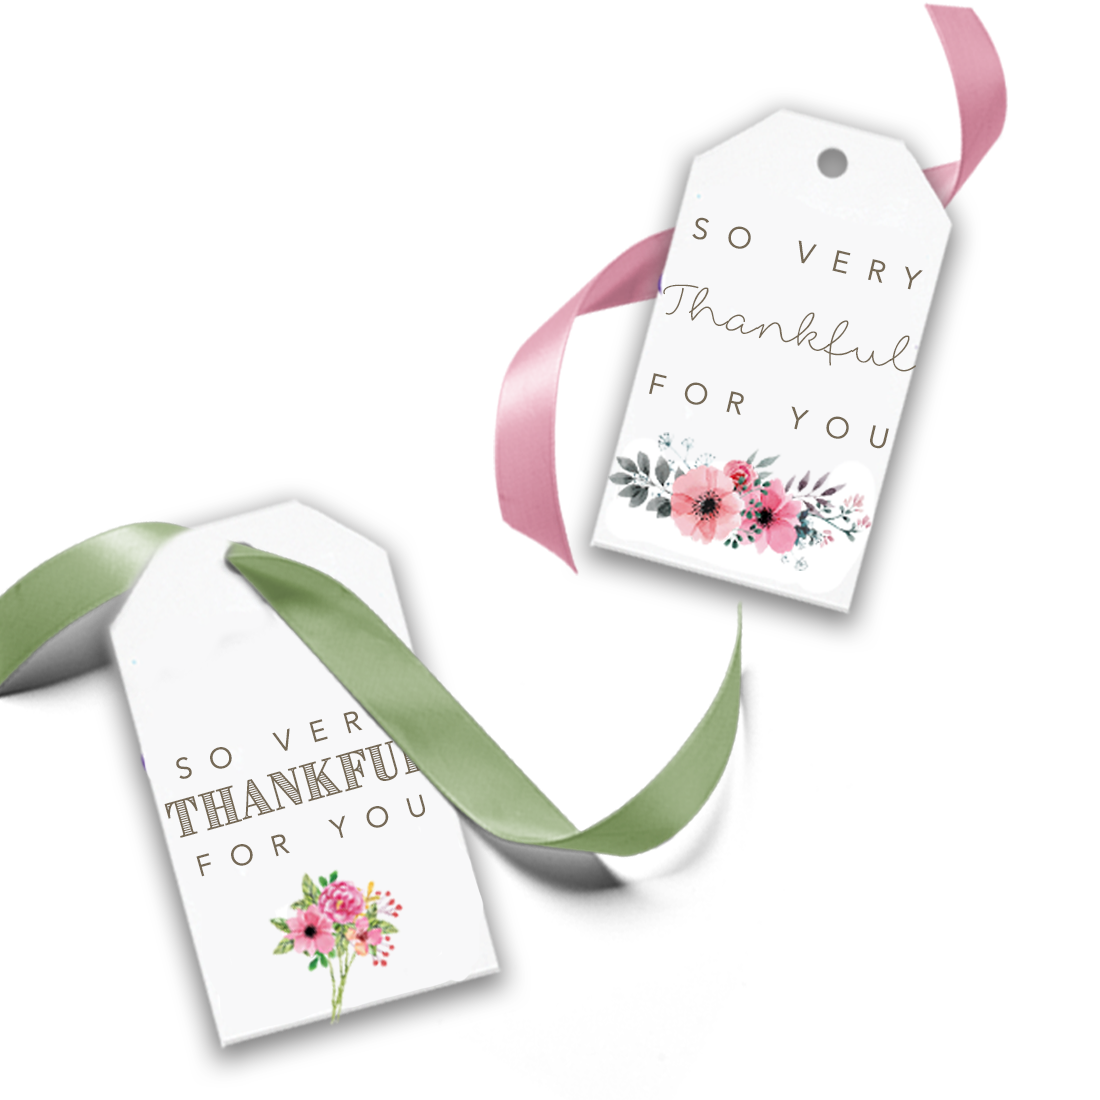 Free Png Jpg Printable Gift Tag So Very Thankful For You